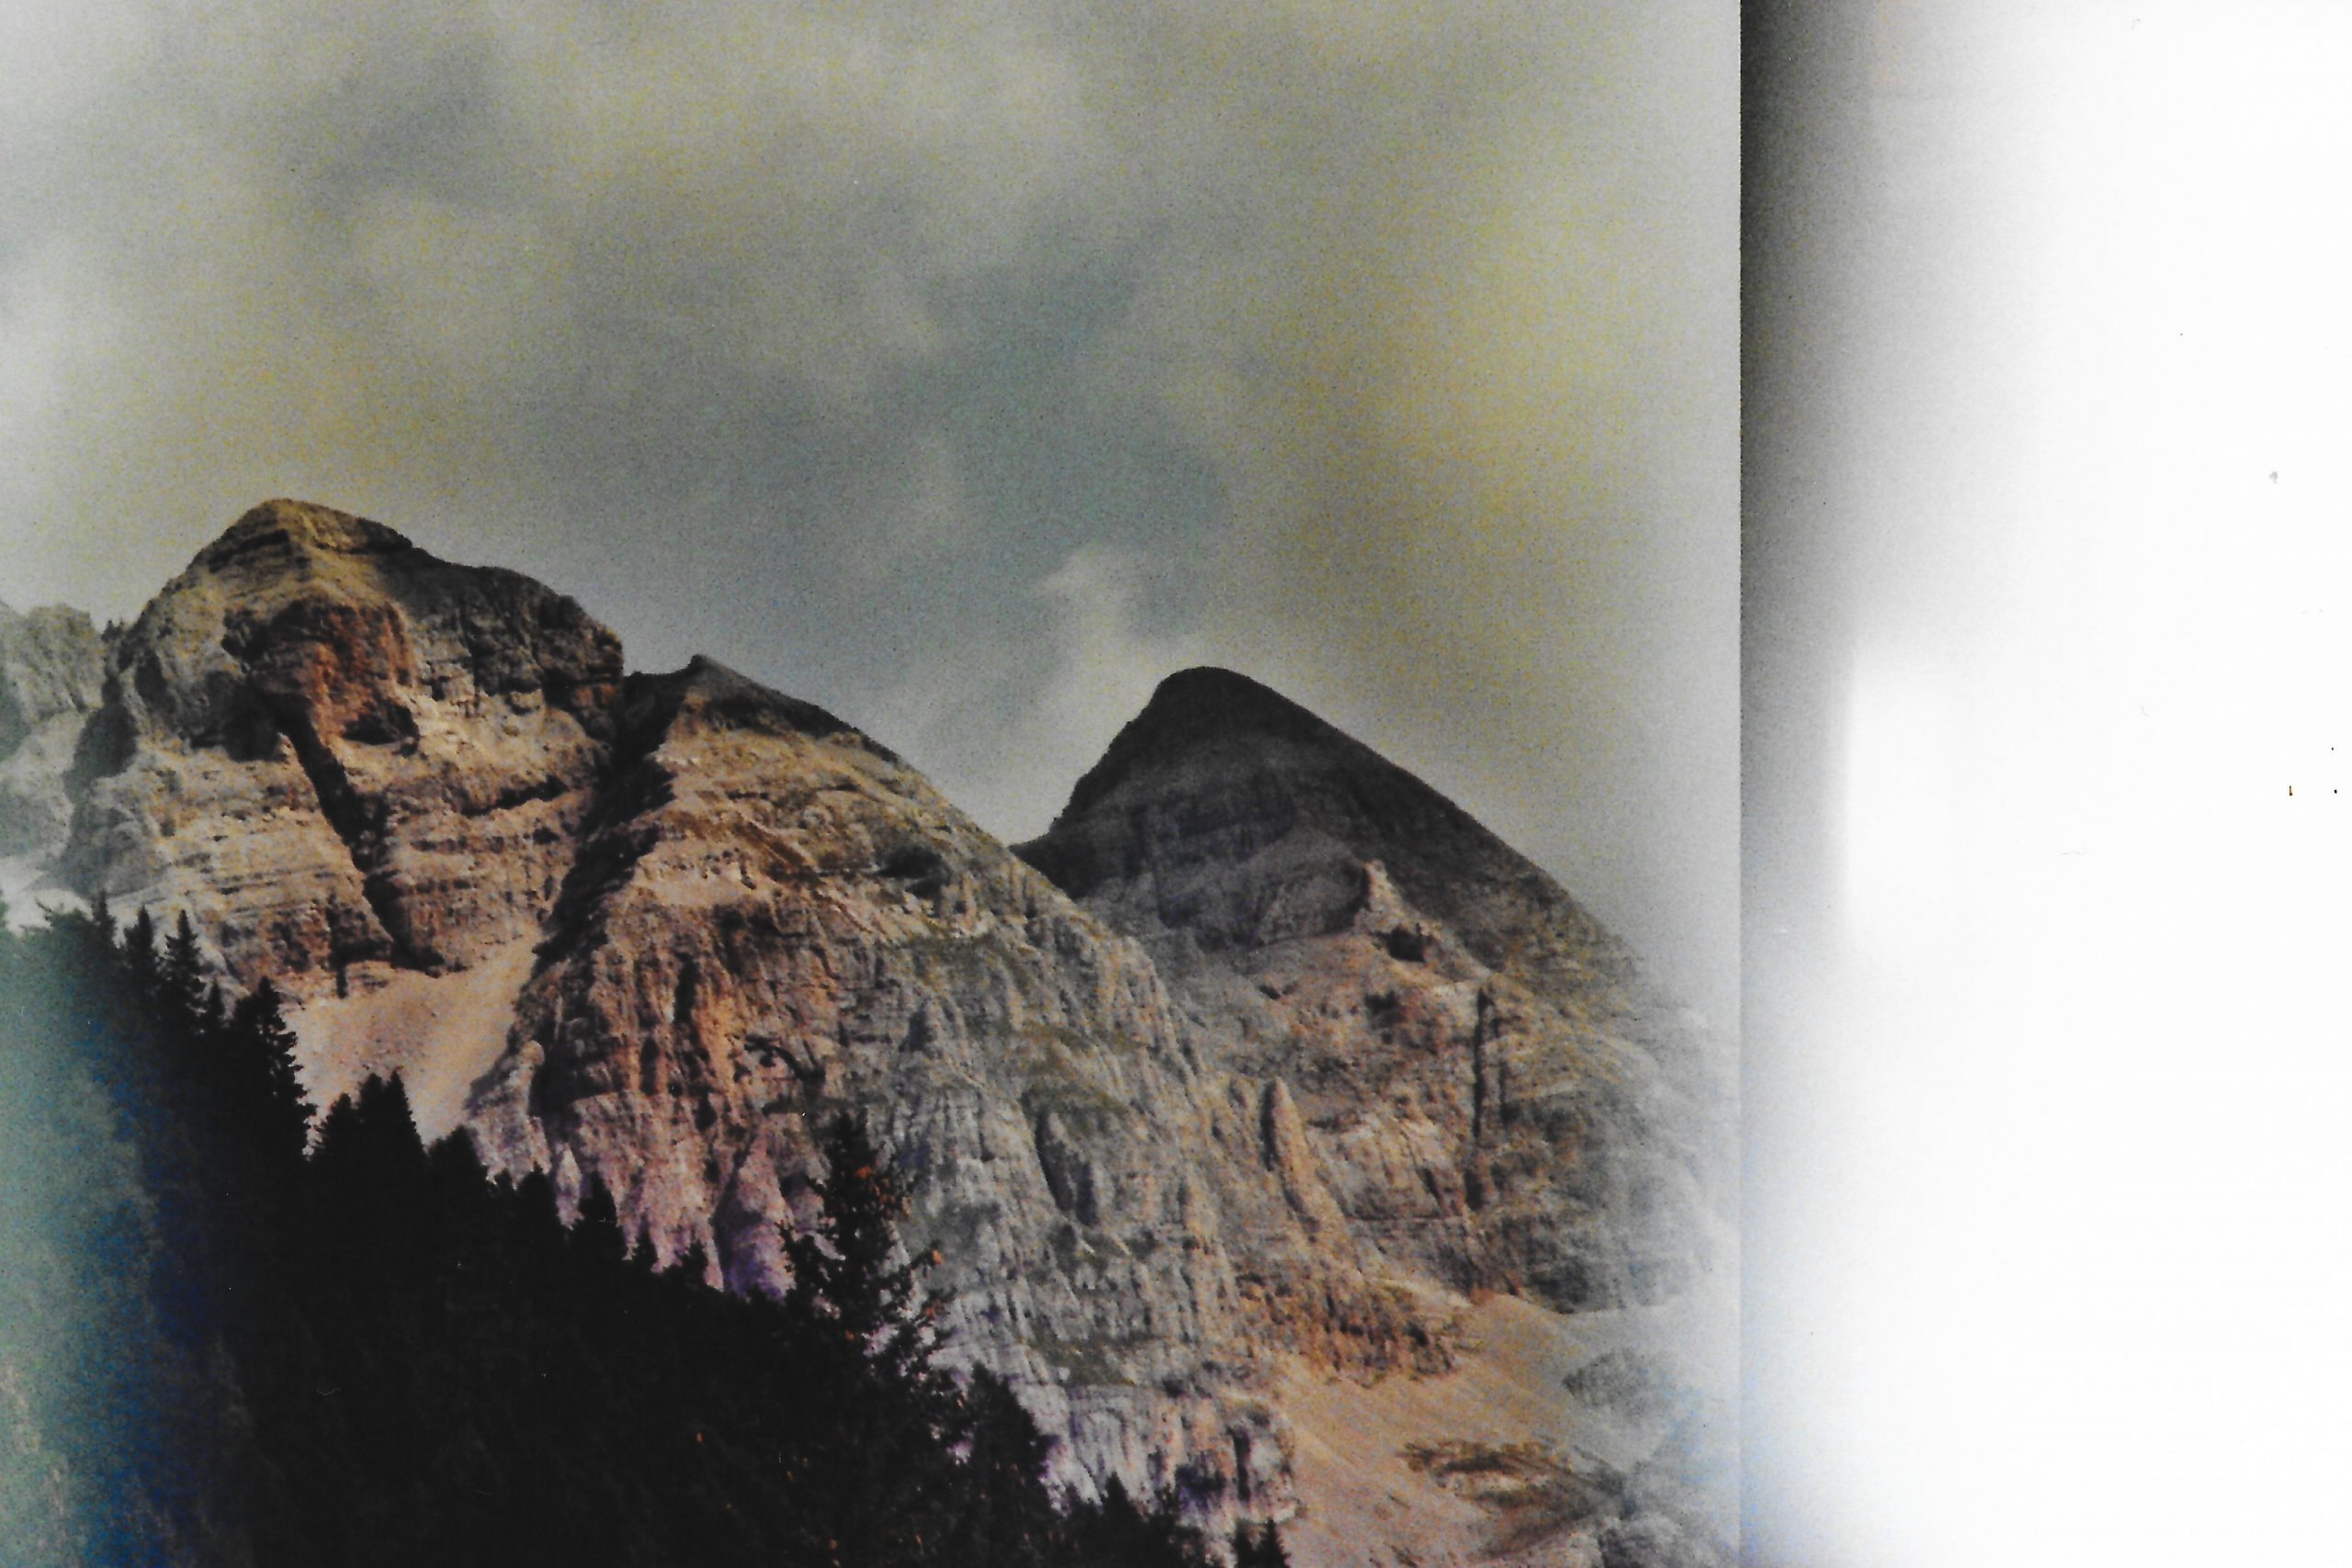 The Dolomites in 35mm